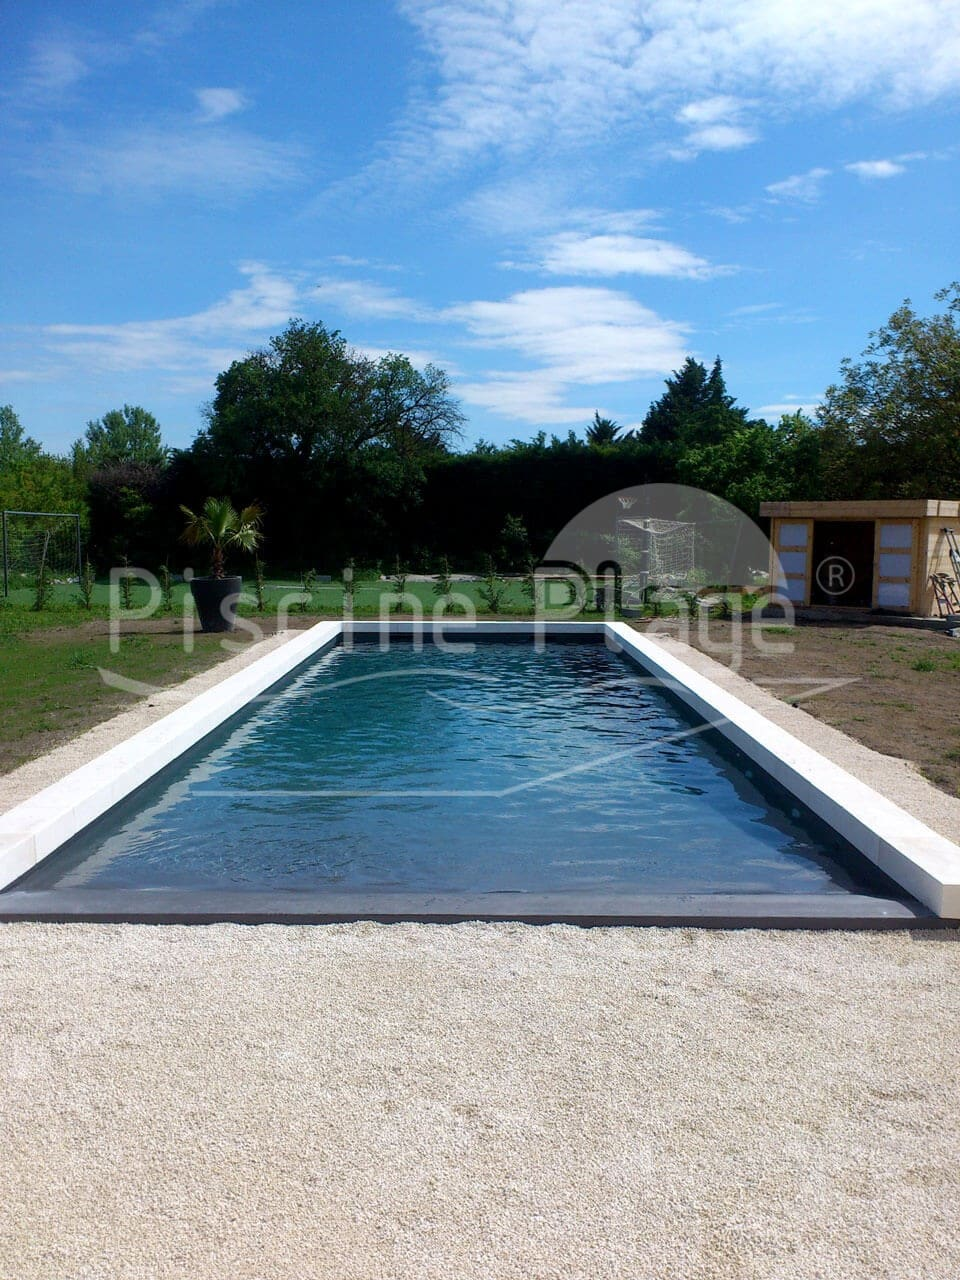 Piscine avec plage immerg e valence fr jus montpellier for Construction piscine montpellier